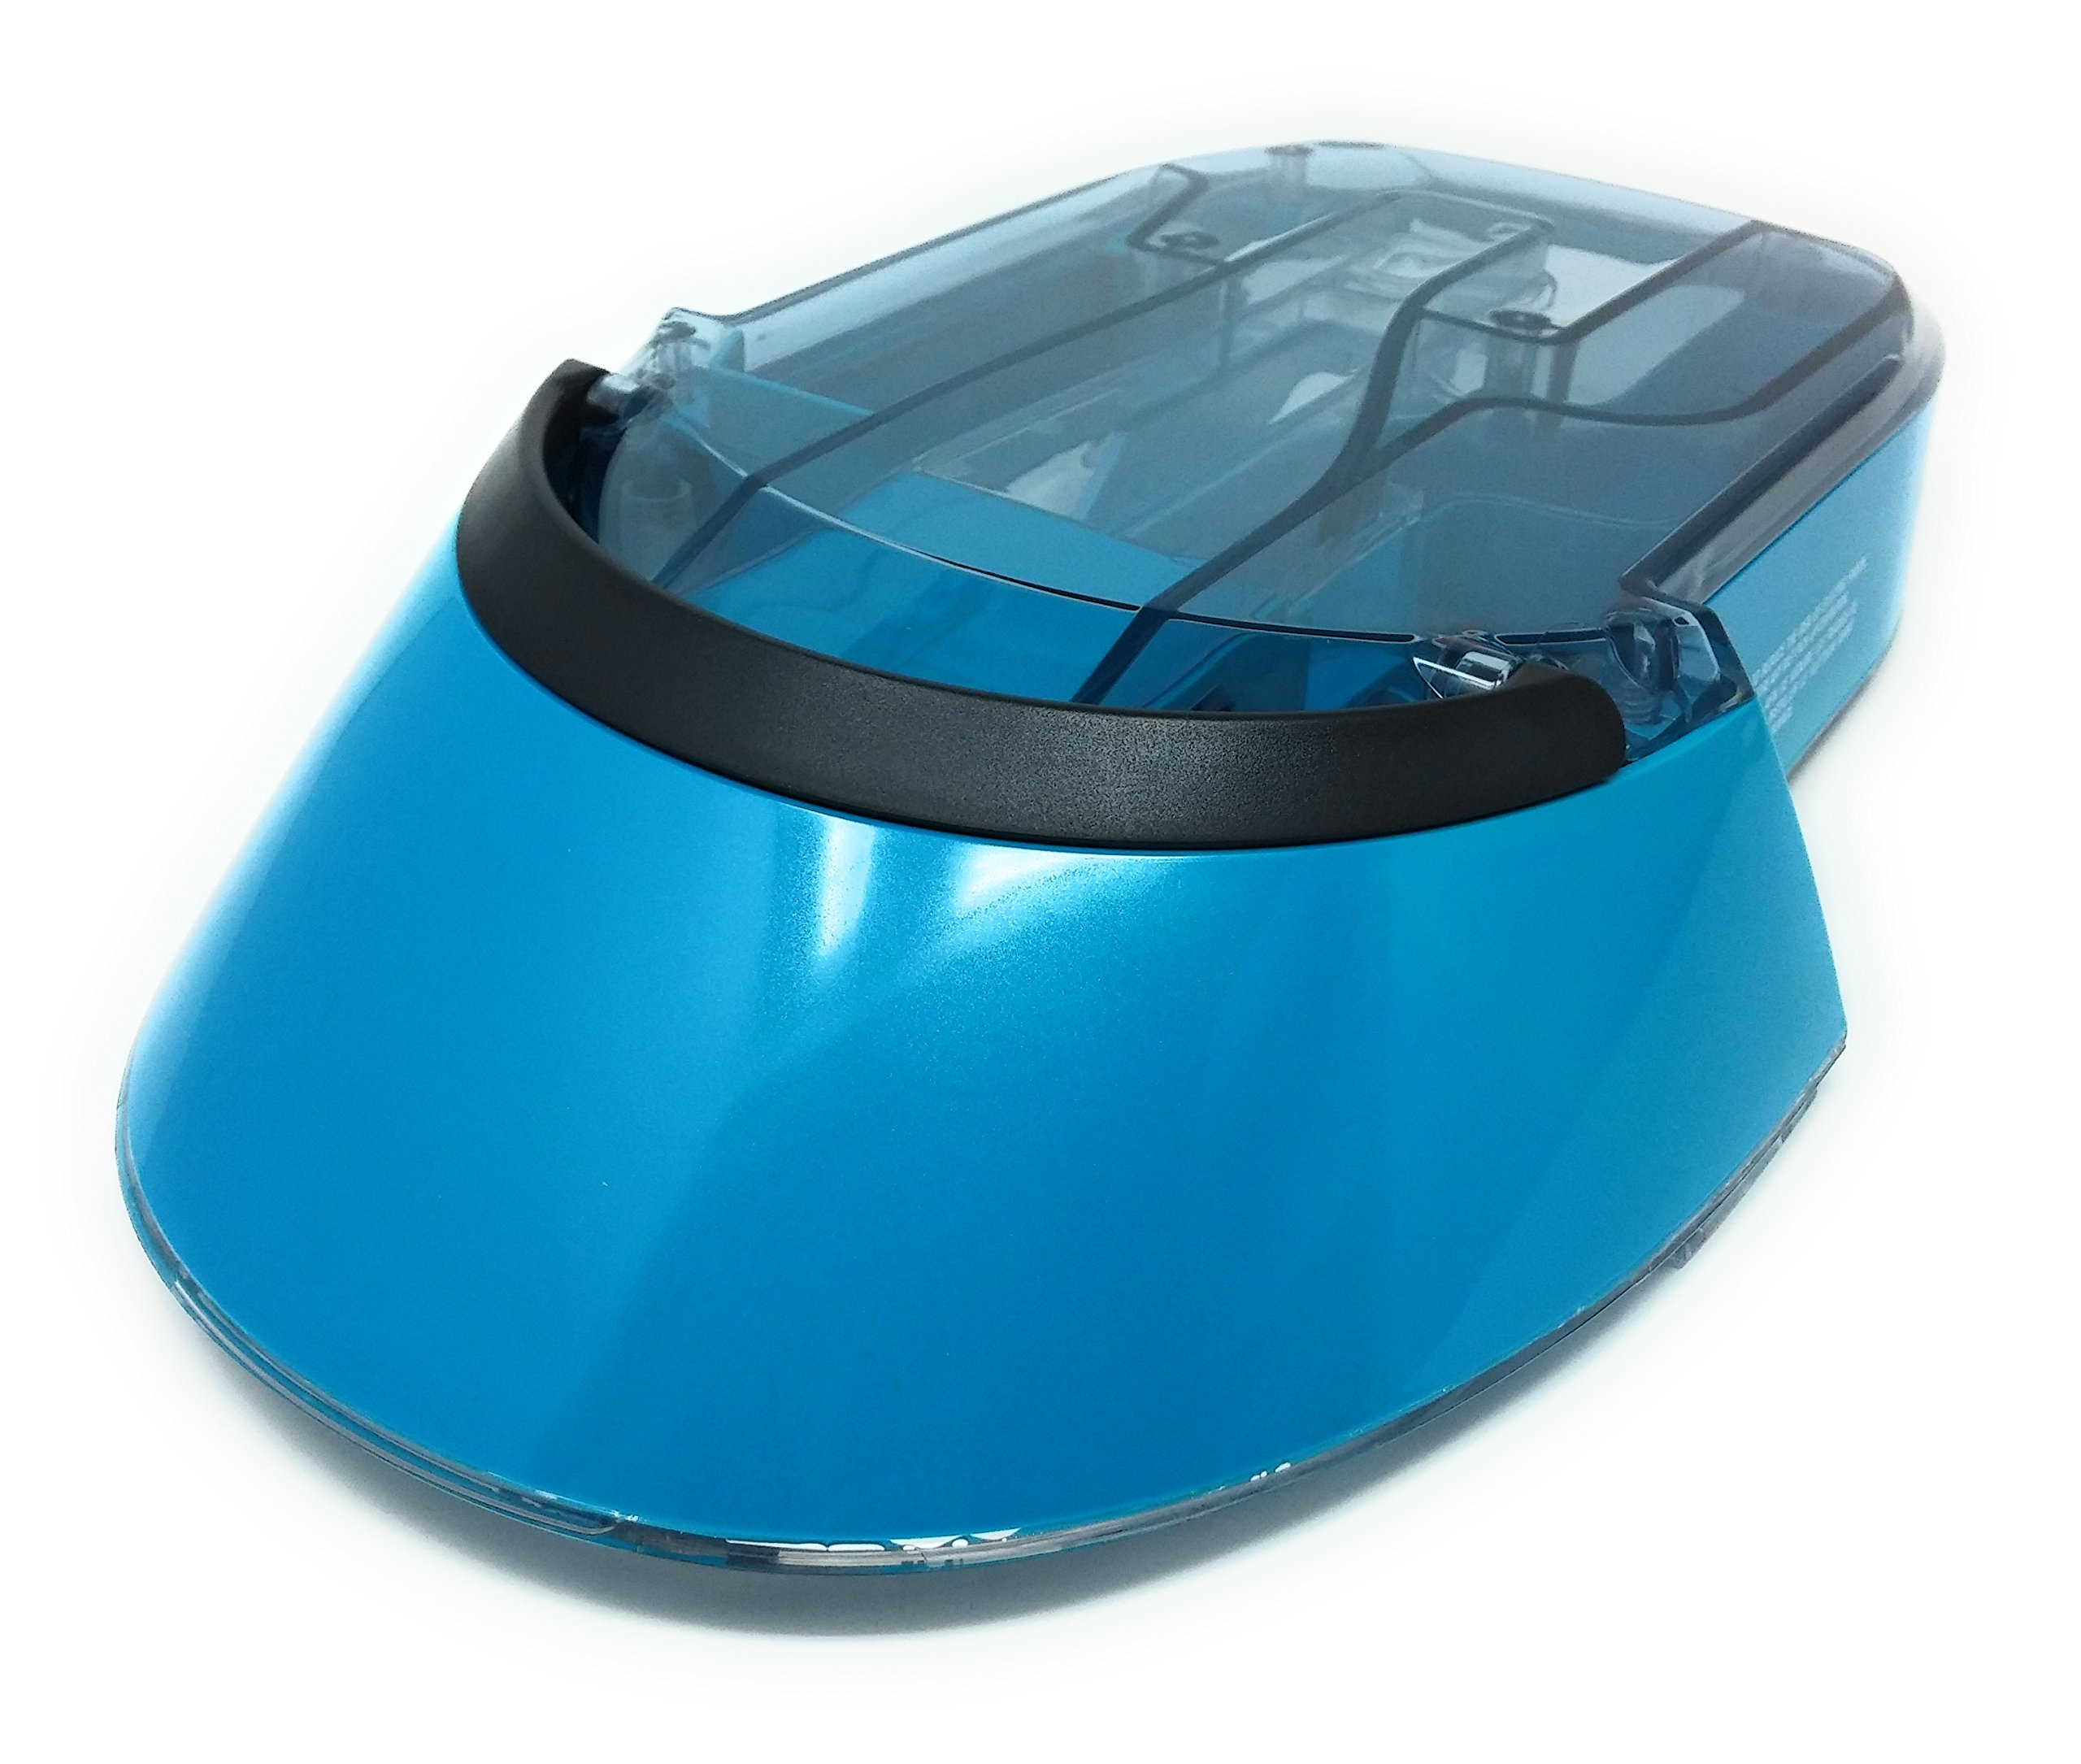 Bissell Deep Clean ProHeat 2X Professional Pet Carpet Cleaner | 17N4 Series Tank Lid Assembly (Aqua Blue)